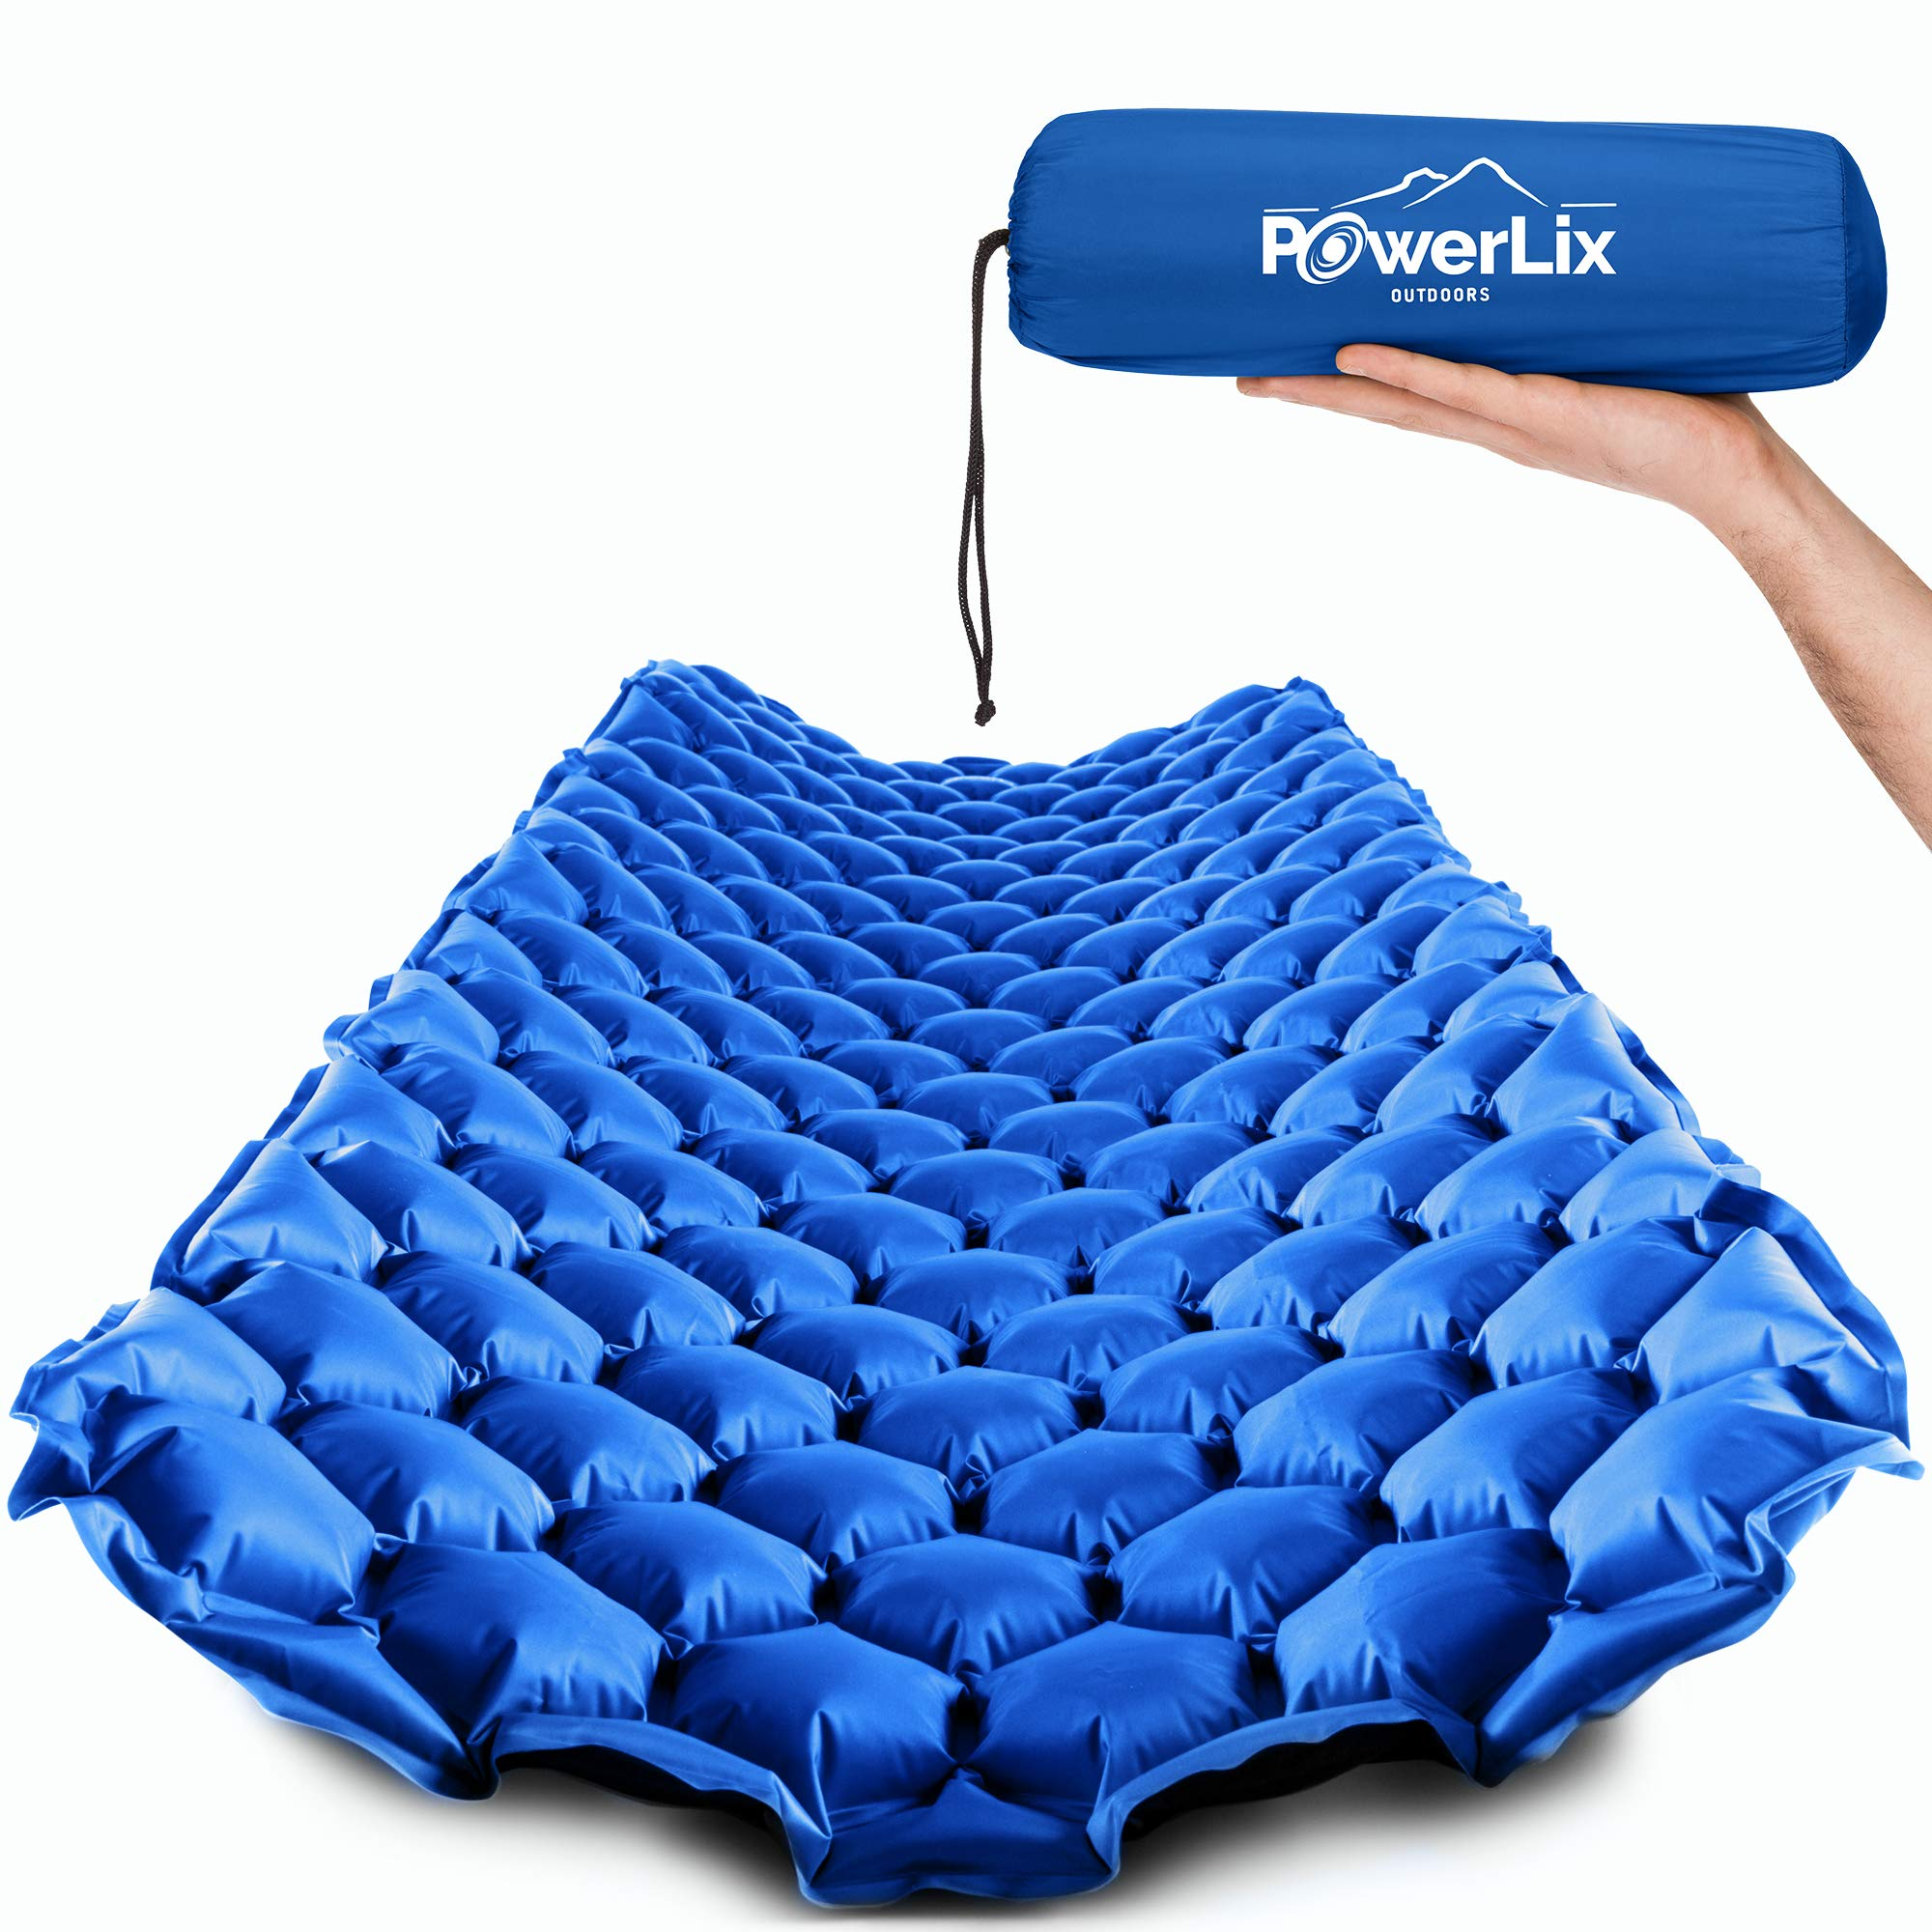 POWERLIX Sleeping Pad - Ultralight Self Inflatable Sleeping Mat, Ultimate for Camping, Backpacking, Hiking - Airpad, Inflating Bag, Carry Bag, Repair Kit - Compact & Lightweight Air Mattress by POWERLIX